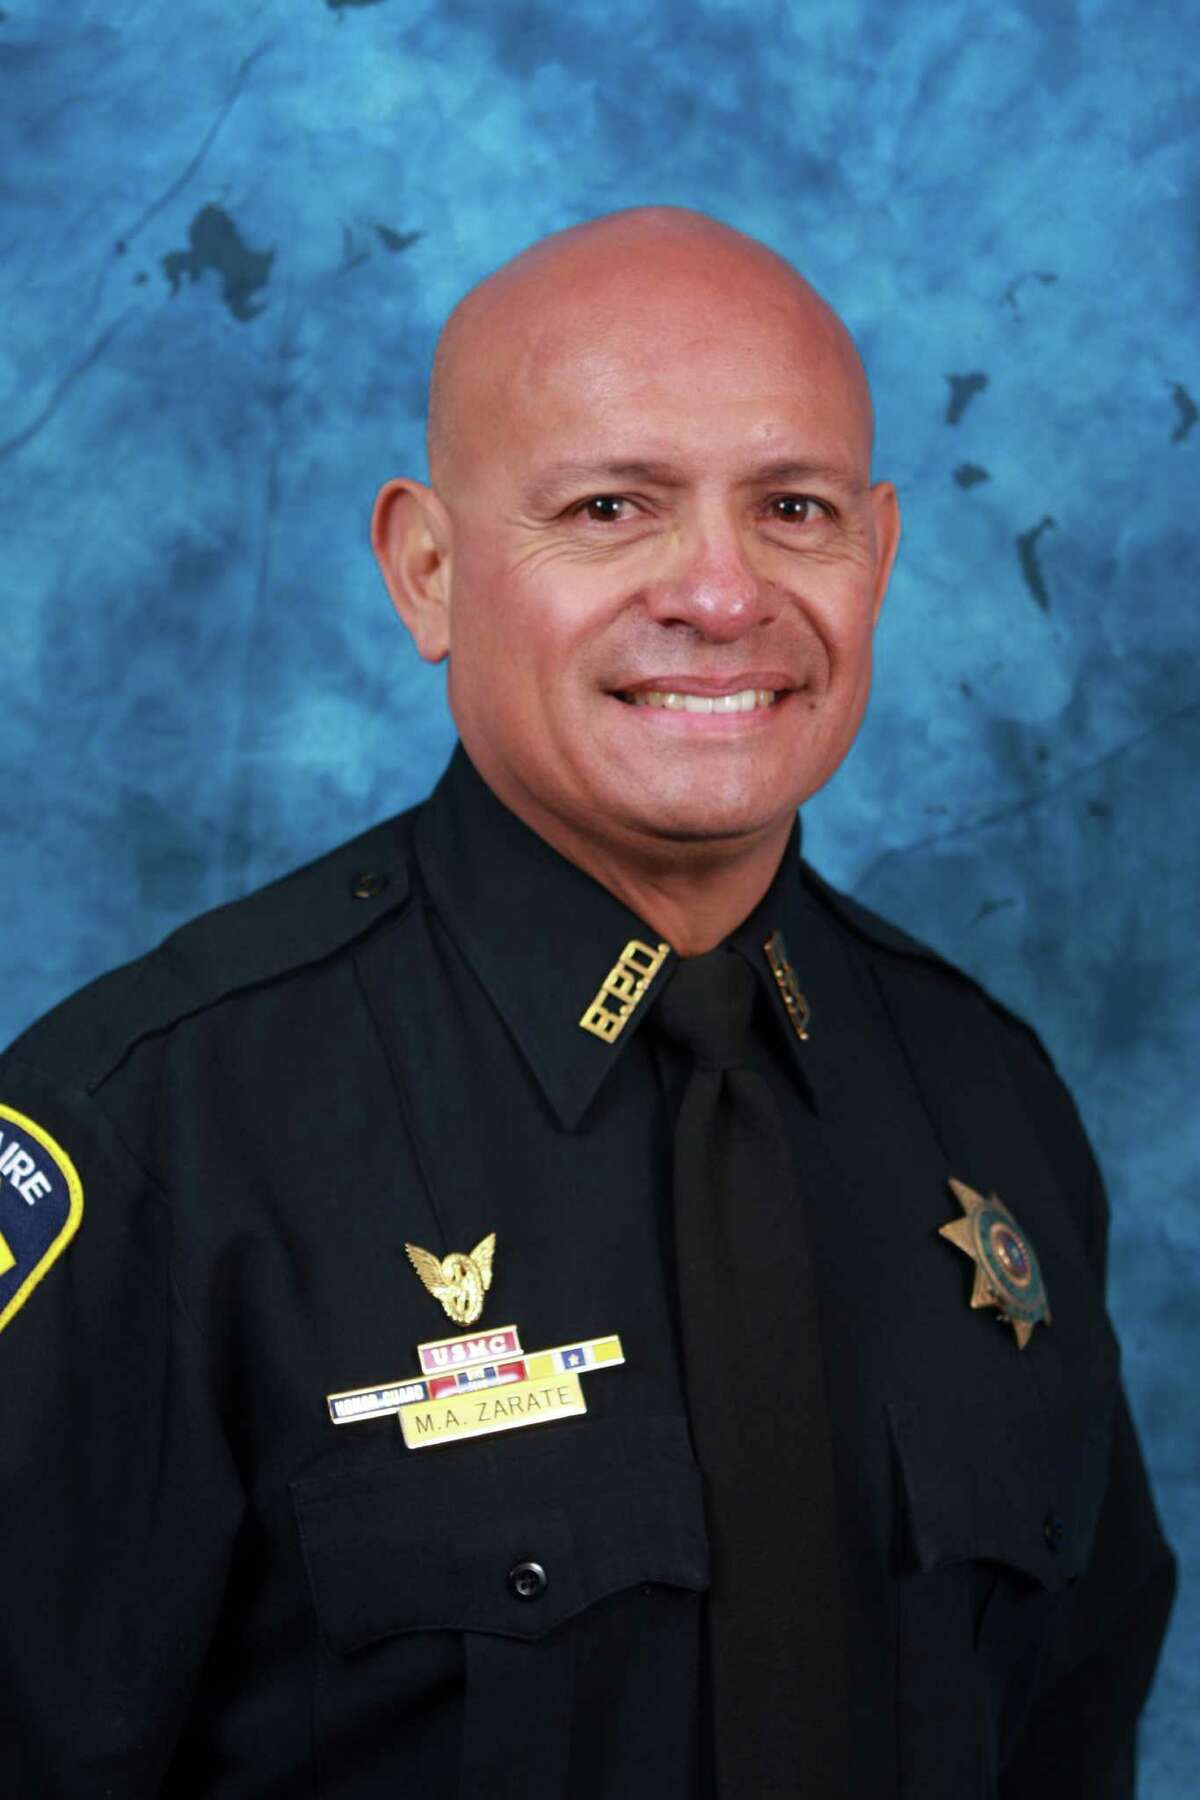 Bellaire police Officer Anthony Marco Zarate, 52, died of his injuries from a motorcycle crash on Tuesday.